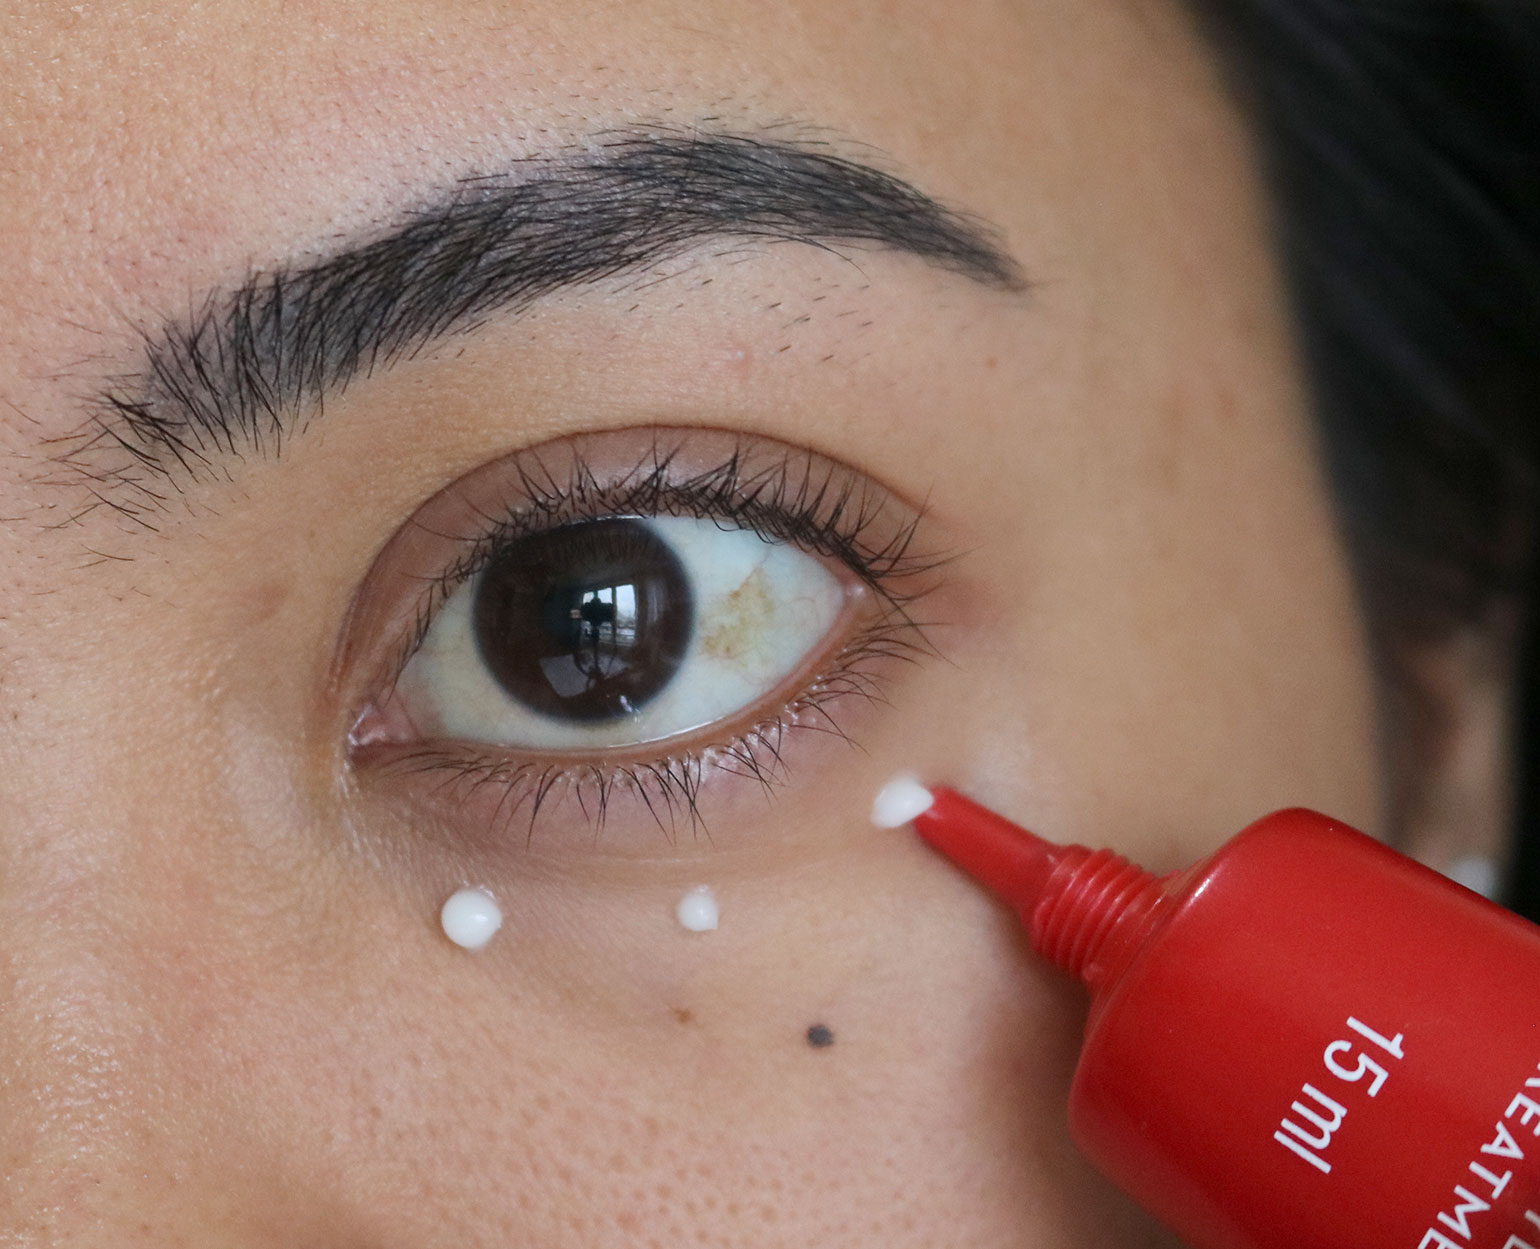 7 Olay Eyes Review Photos Before and After - She Sings Beauty by Gen-zel Habab